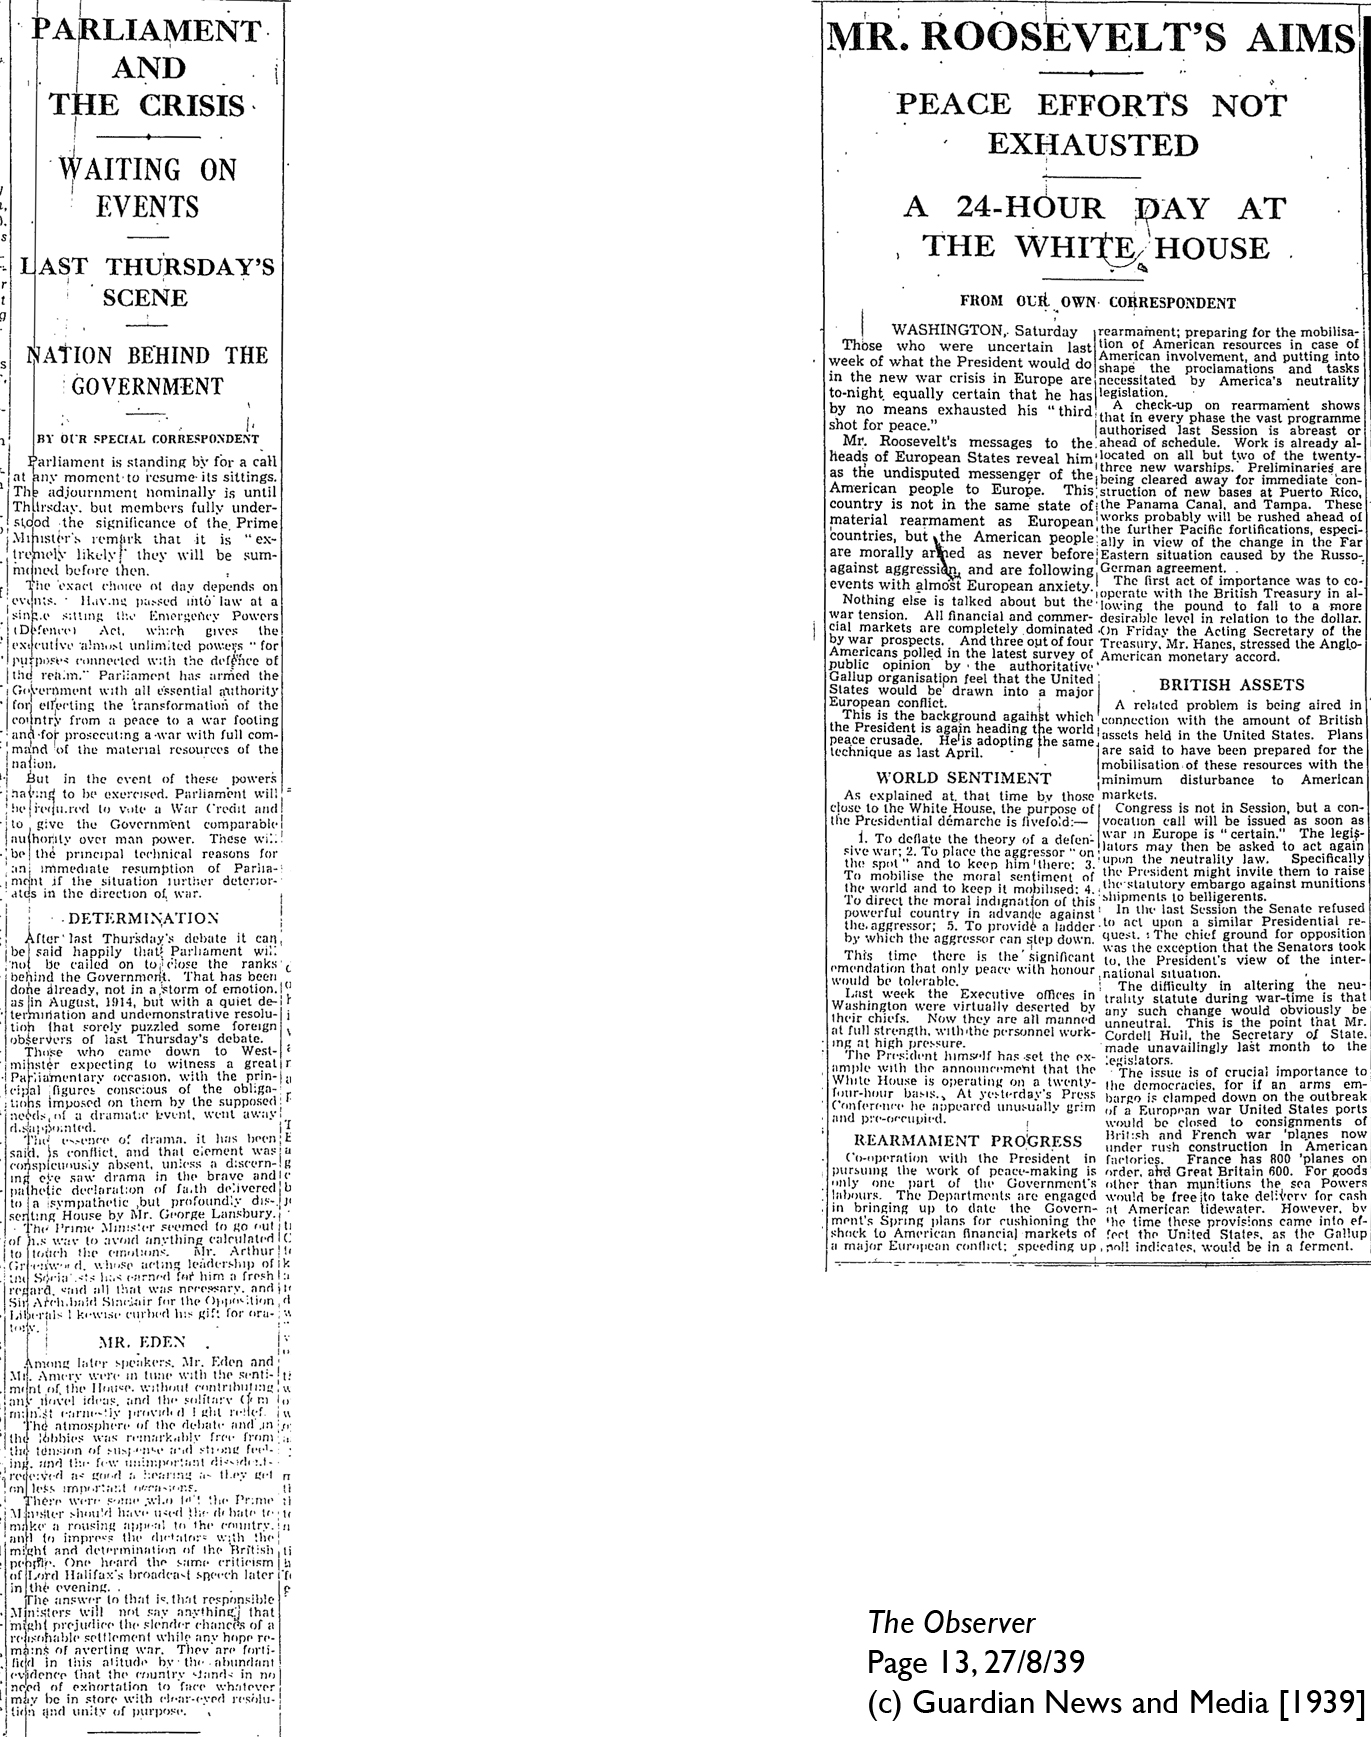 The Observer 27-8-39 Page 13